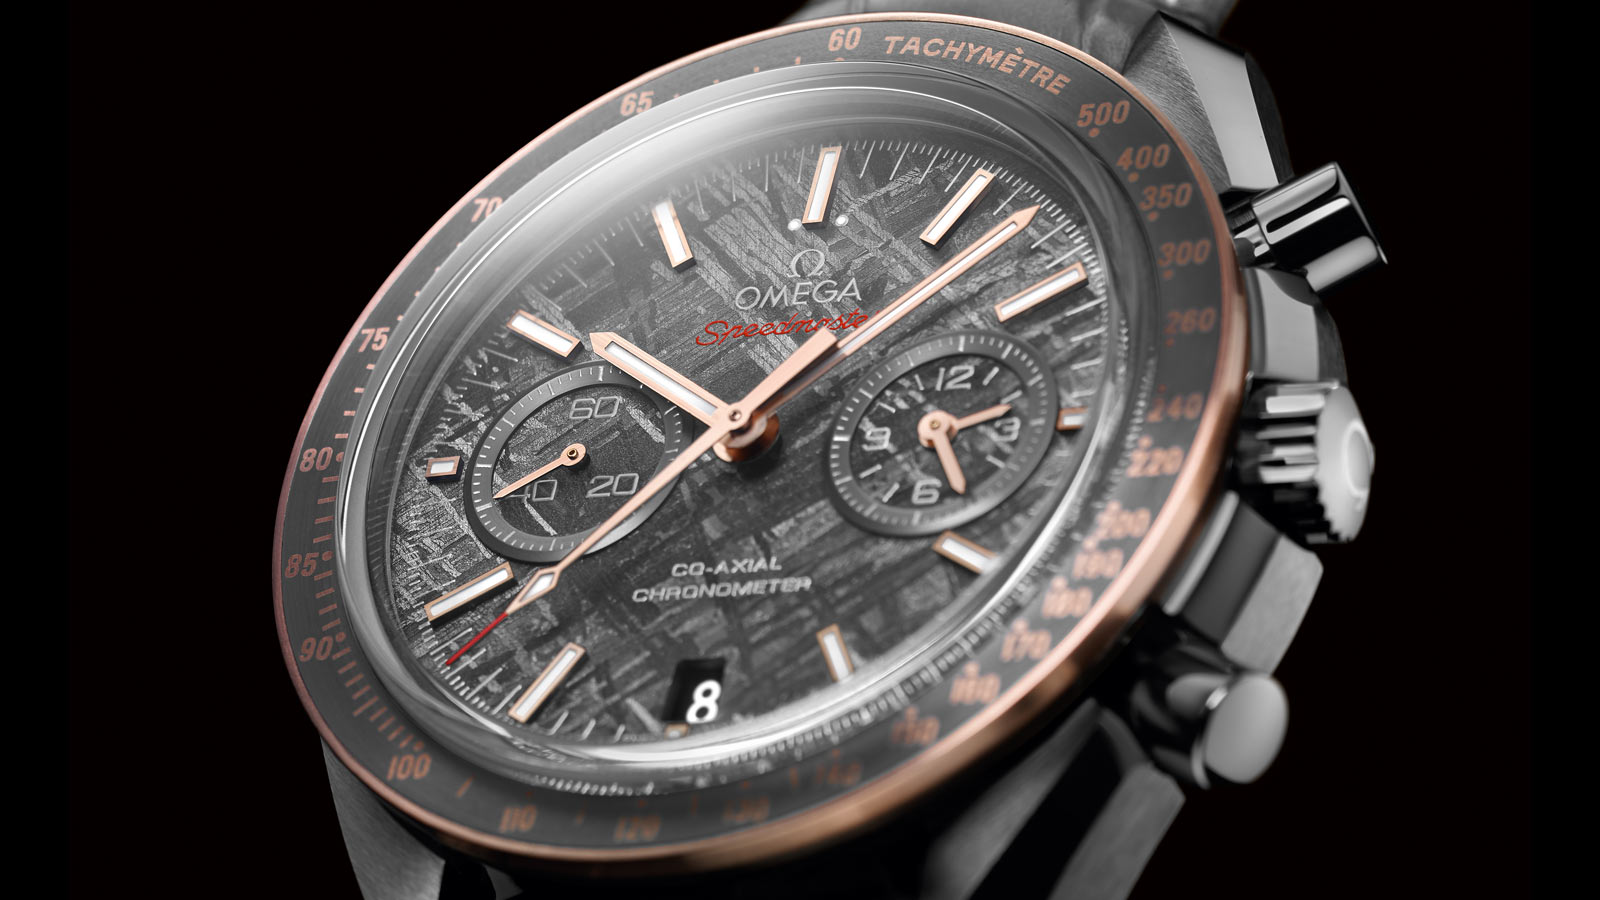 Speedmaster Moonwatch Moonwatch Omega Co‑Axial Chronograph 44,25 mm - 311.63.44.51.99.001 - Vista 1